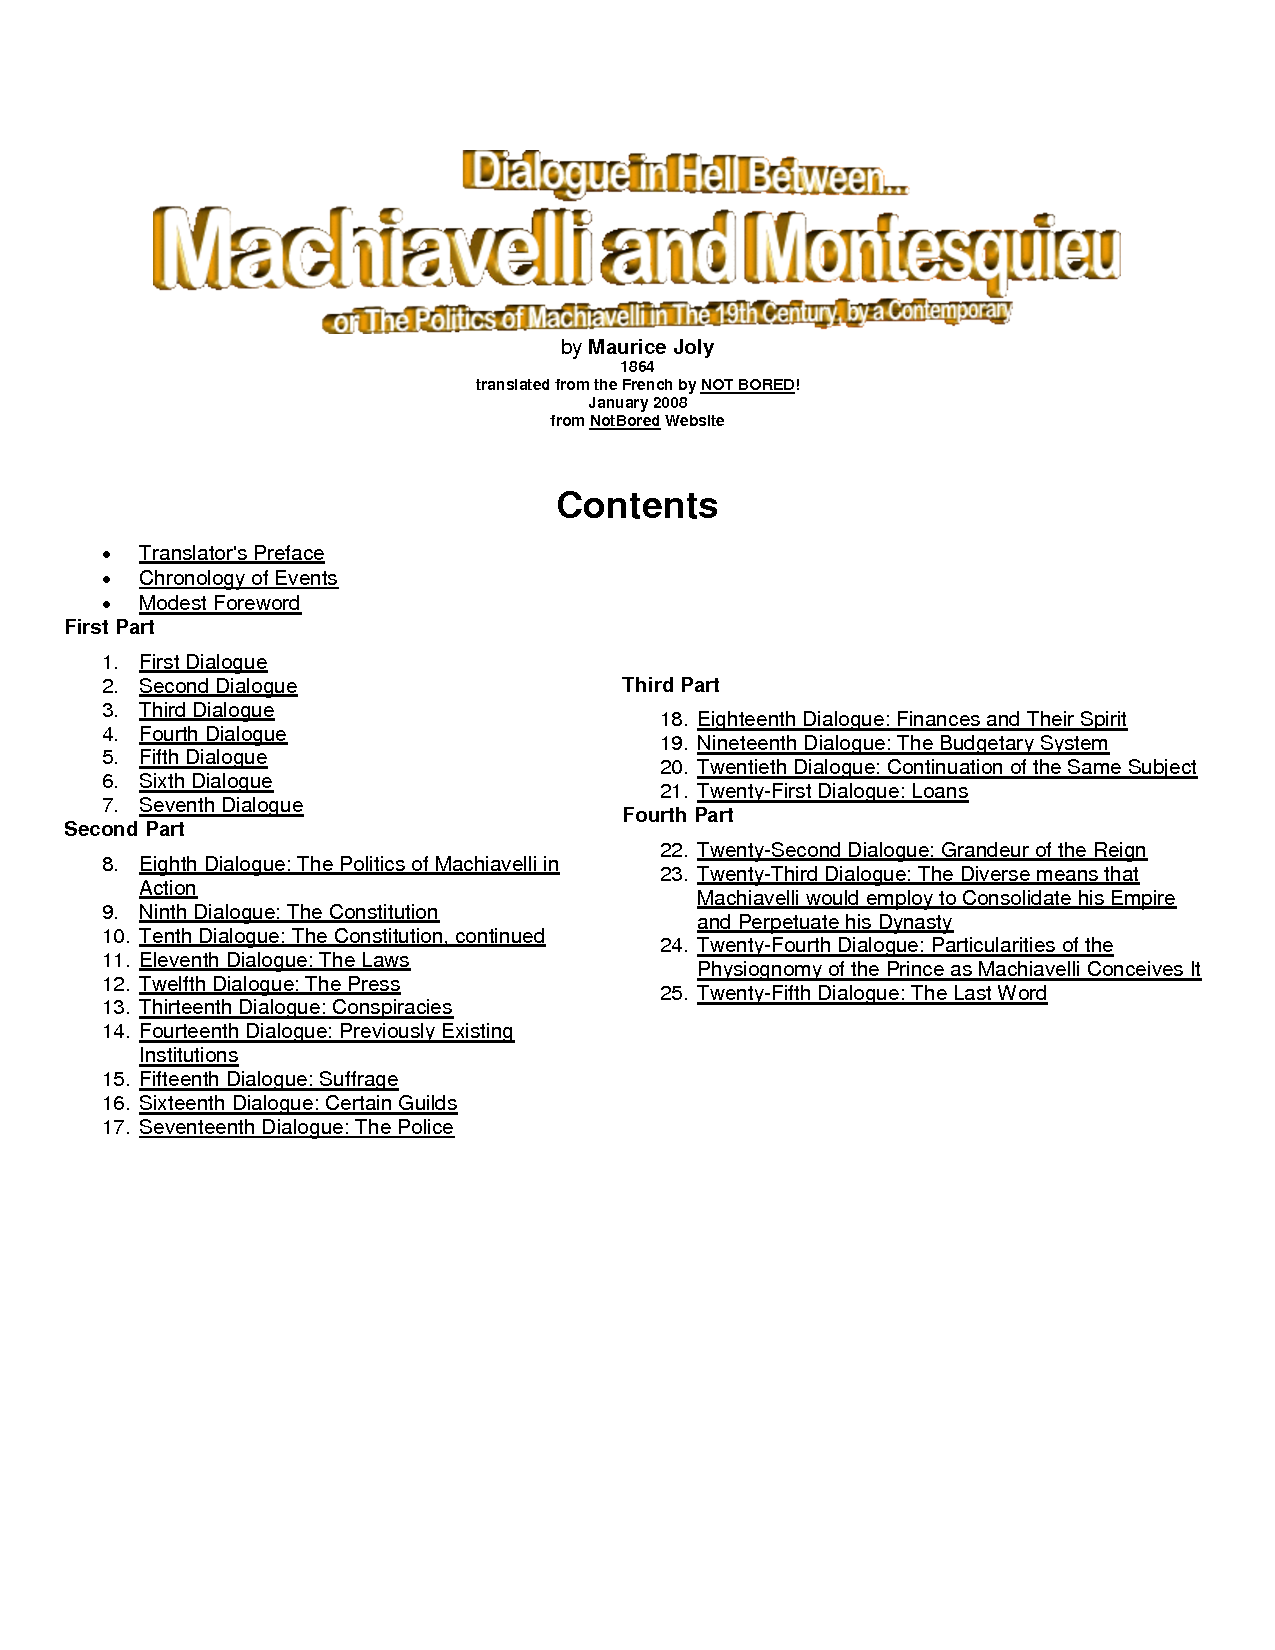 machiavellis ideas on leadership 8 characteristics of a machiavellian leader posted on august 29, 2013 december 15, 2015 by matt monge culture and leadership tools and tips, and other updates.